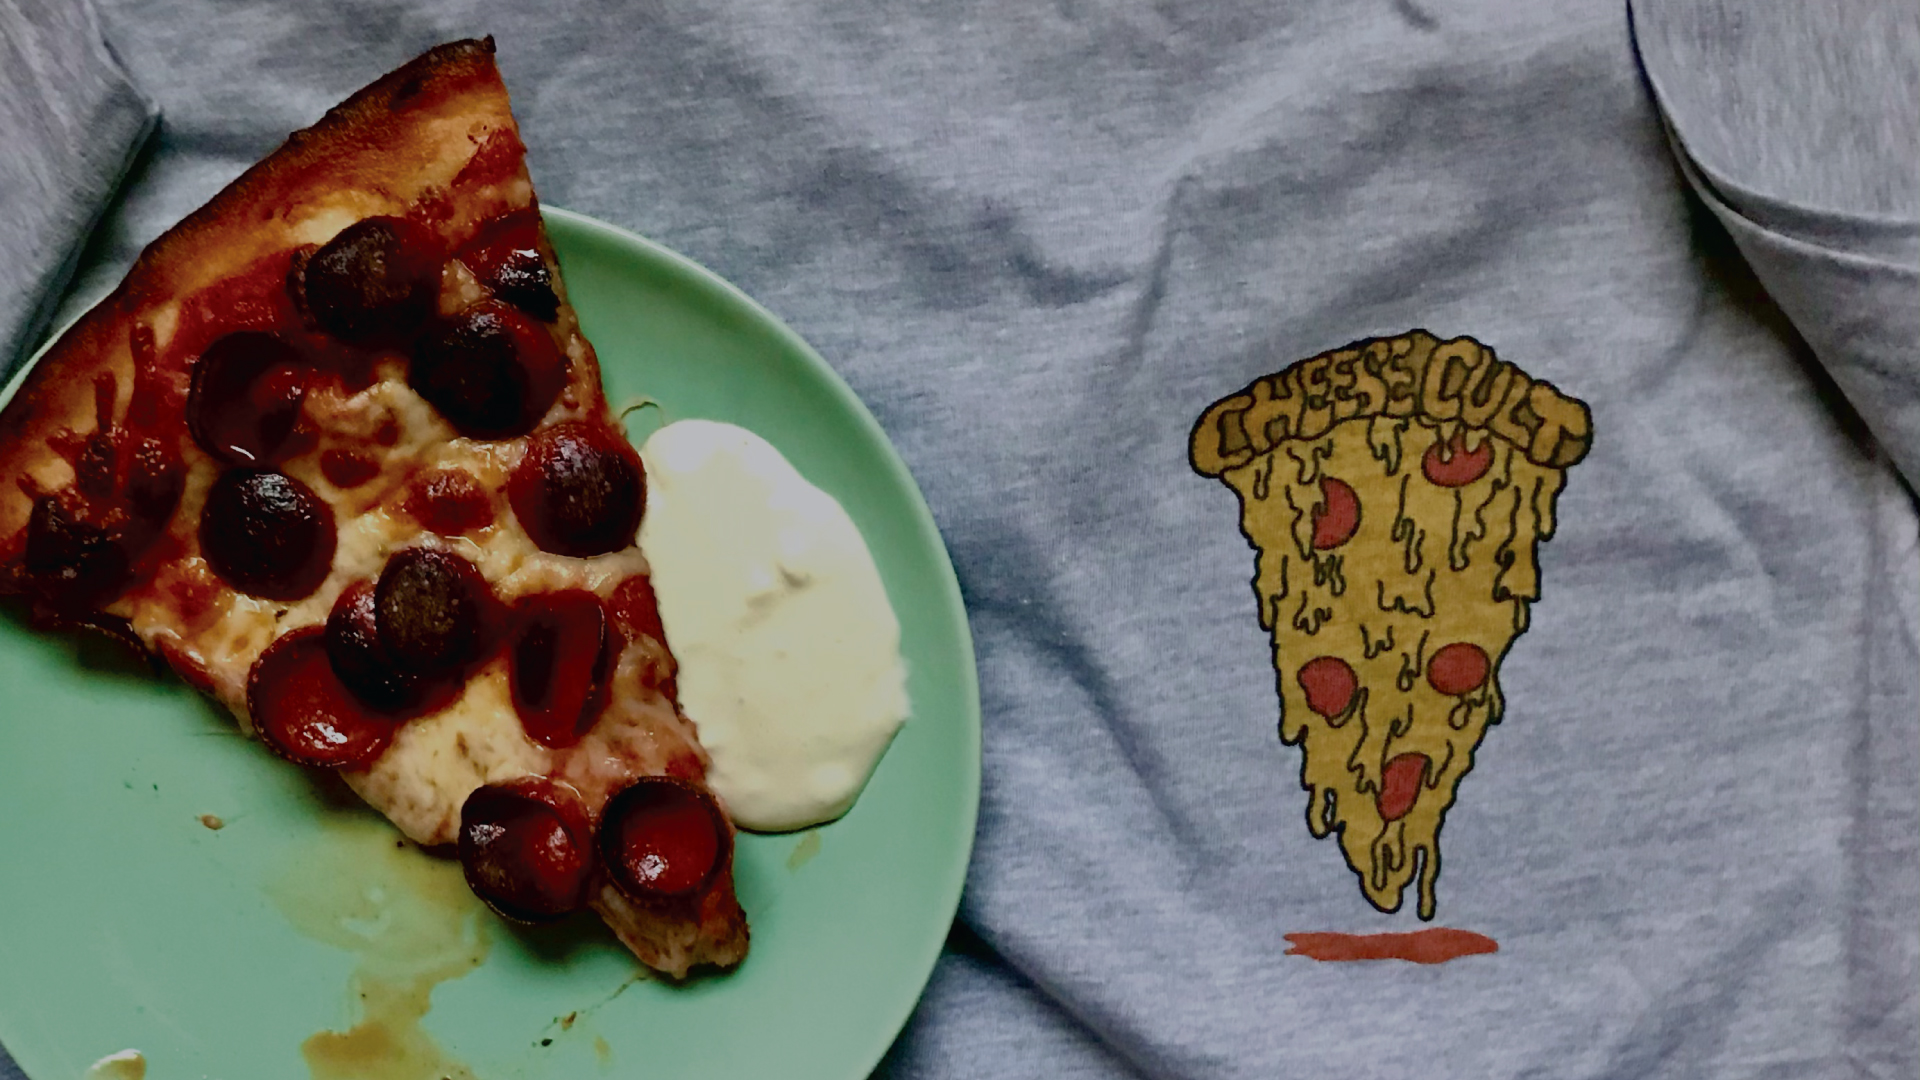 Cheese Cult Pizza T-Shirt